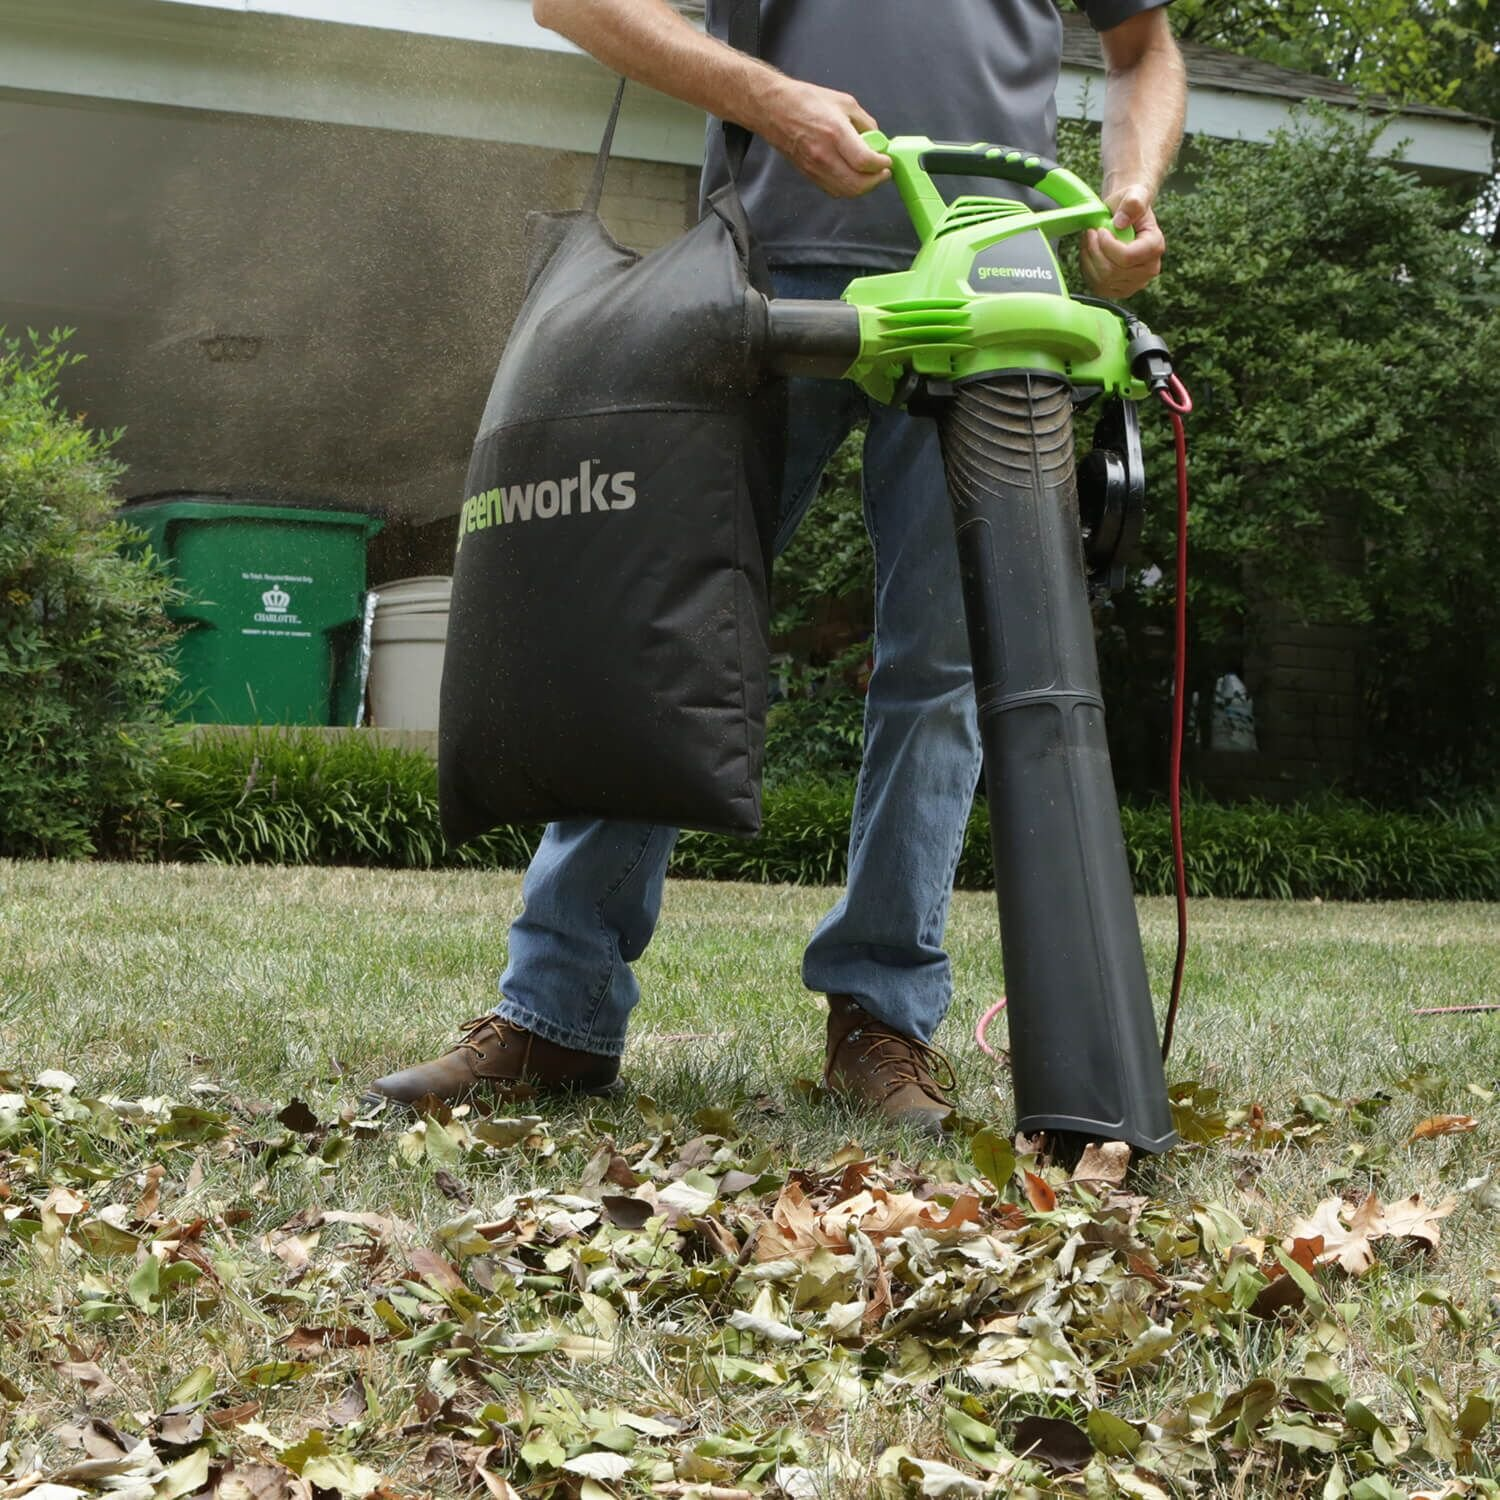 Greenworks 2 Speed 230 MPH Corded Blower/Vacuum 24022